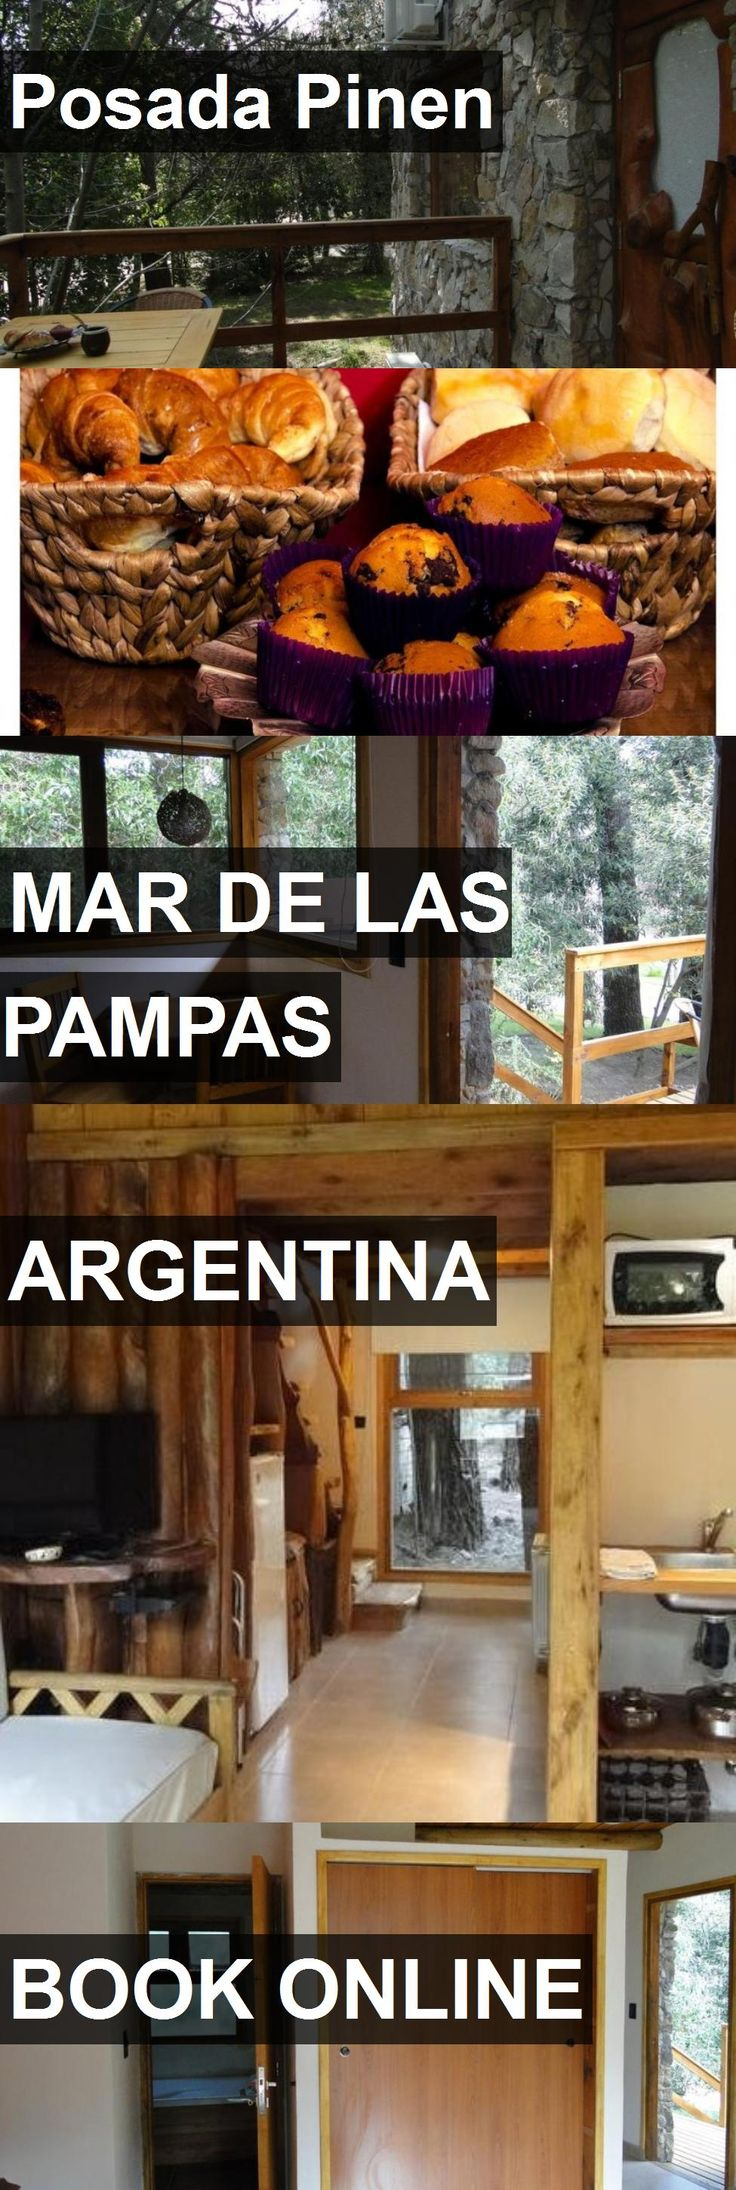 Hotel Posada Pinen in Mar de las Pampas, Argentina. For more information, photos, reviews and best prices please follow the link. #Argentina #MardelasPampas #hotel #travel #vacation